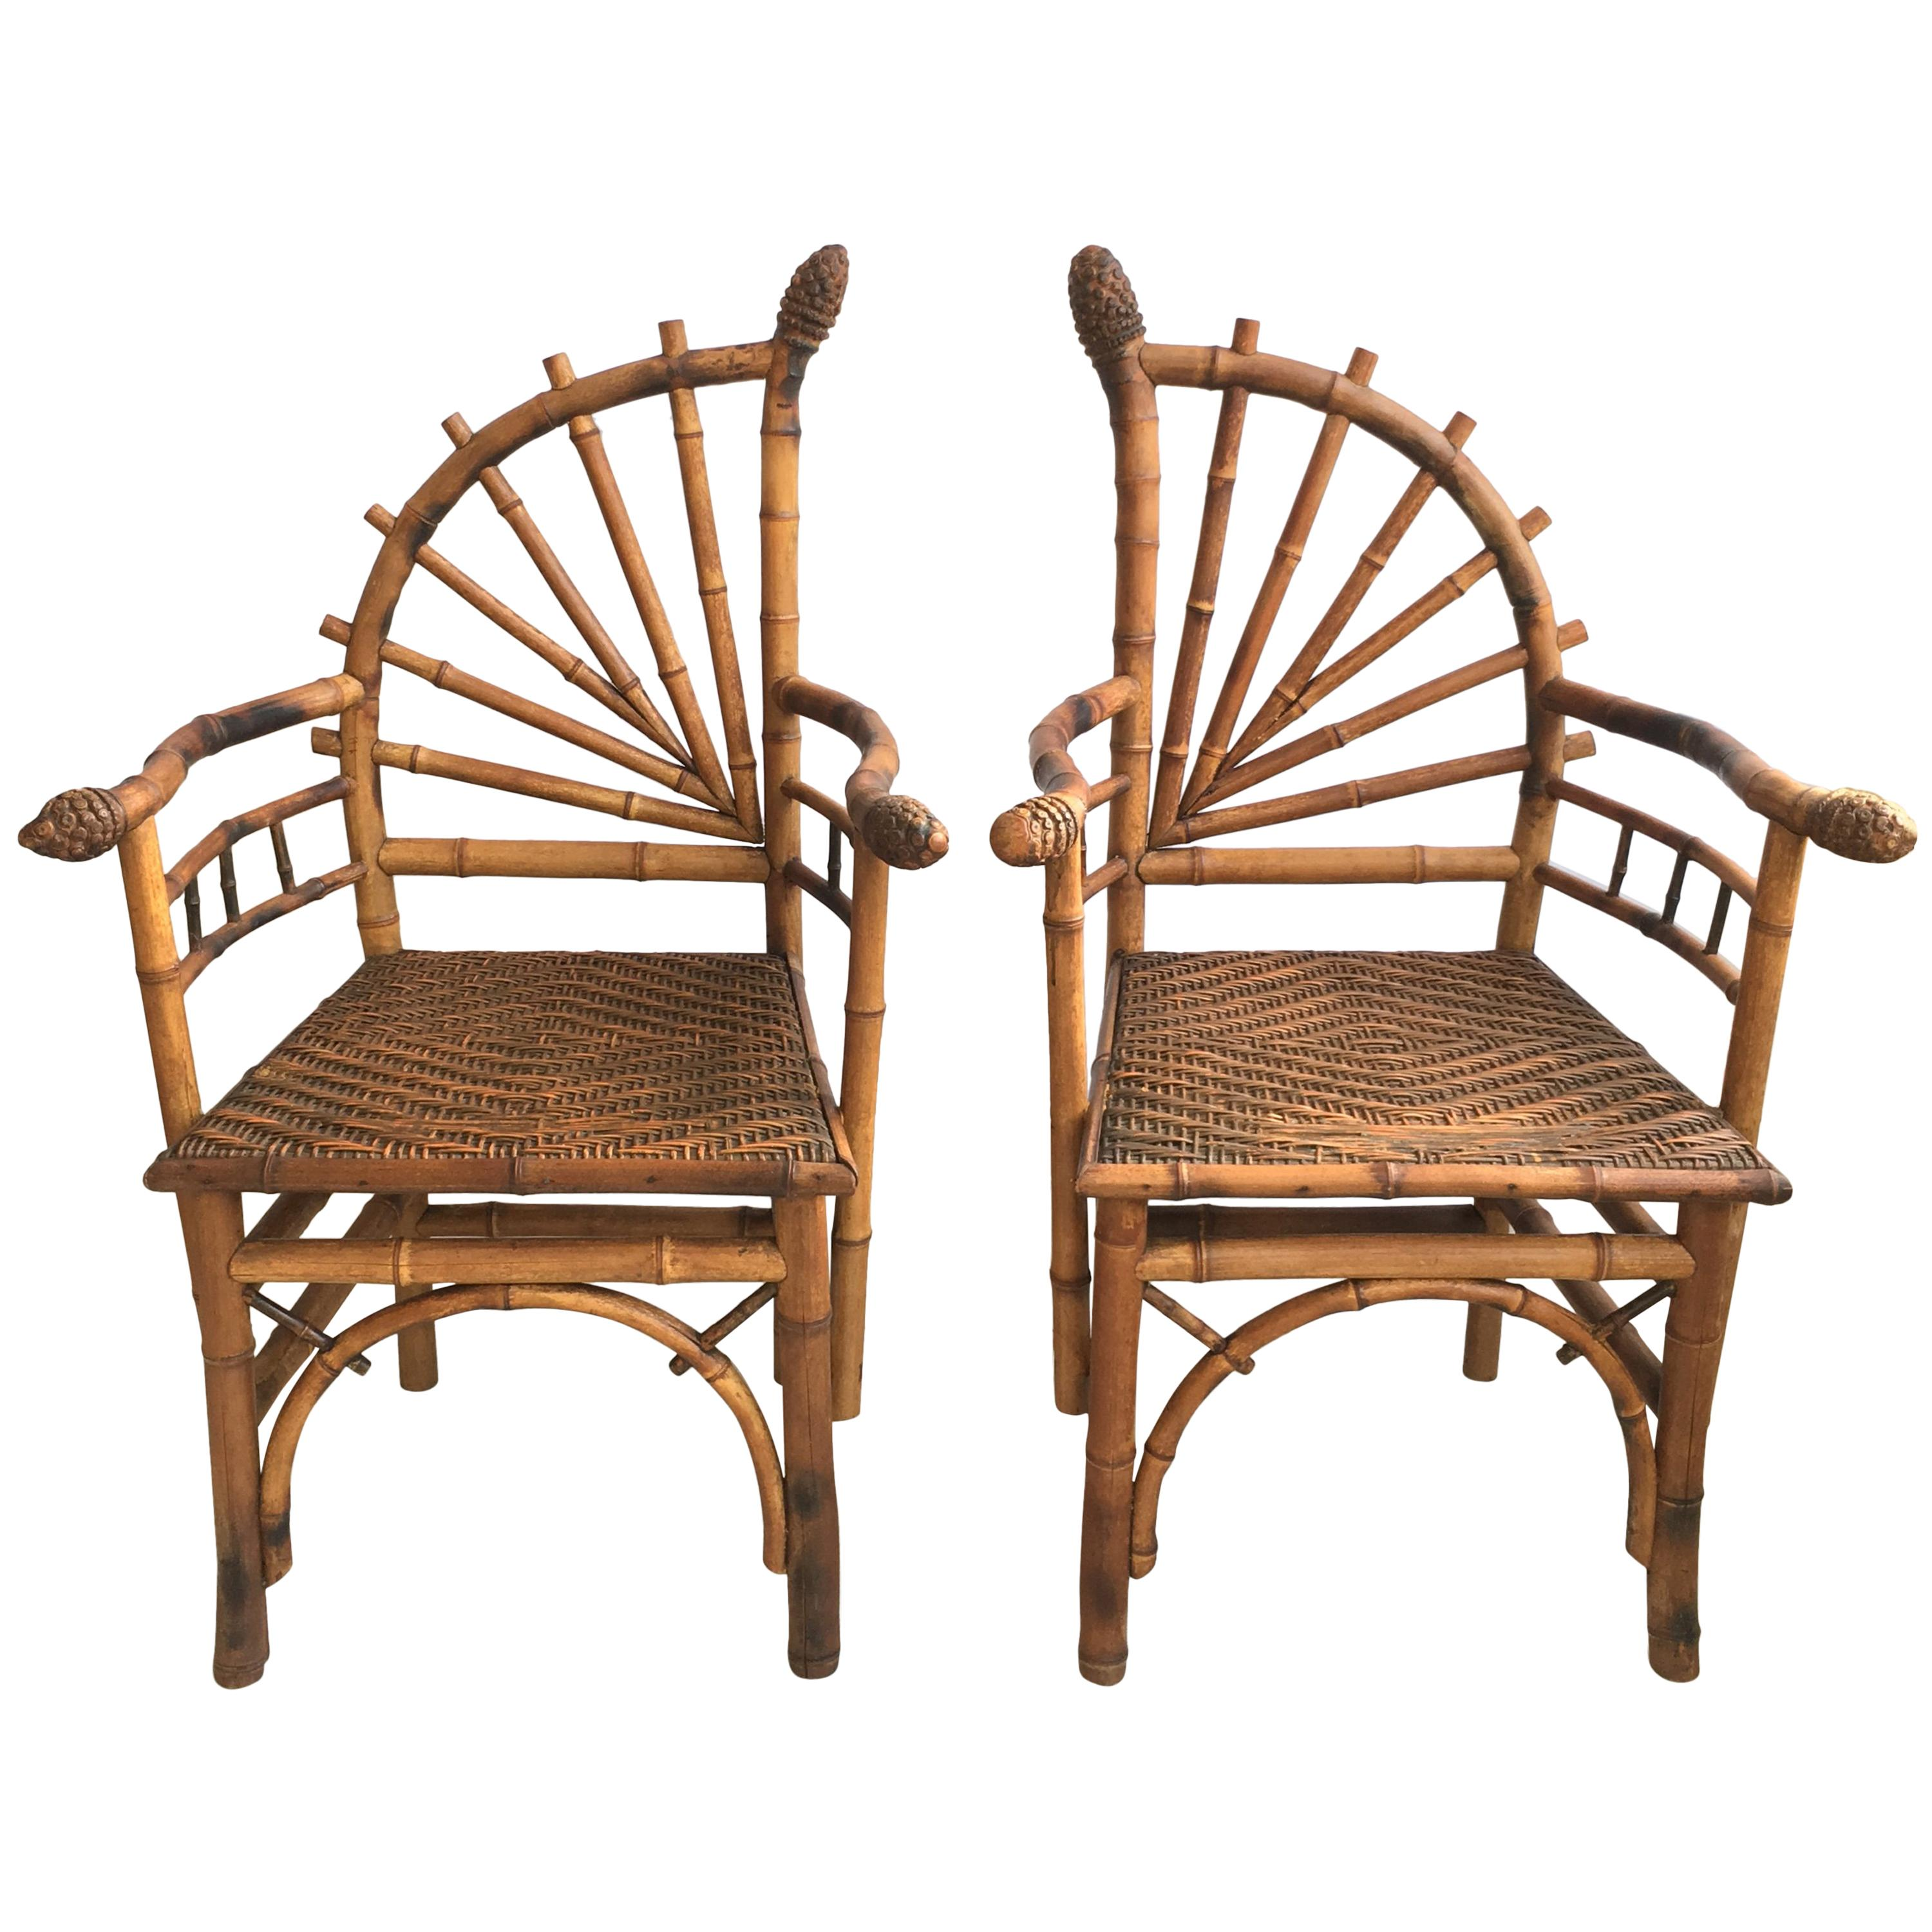 Bamboo Chairs Decorative Pair Of Antique Bamboo Chairs